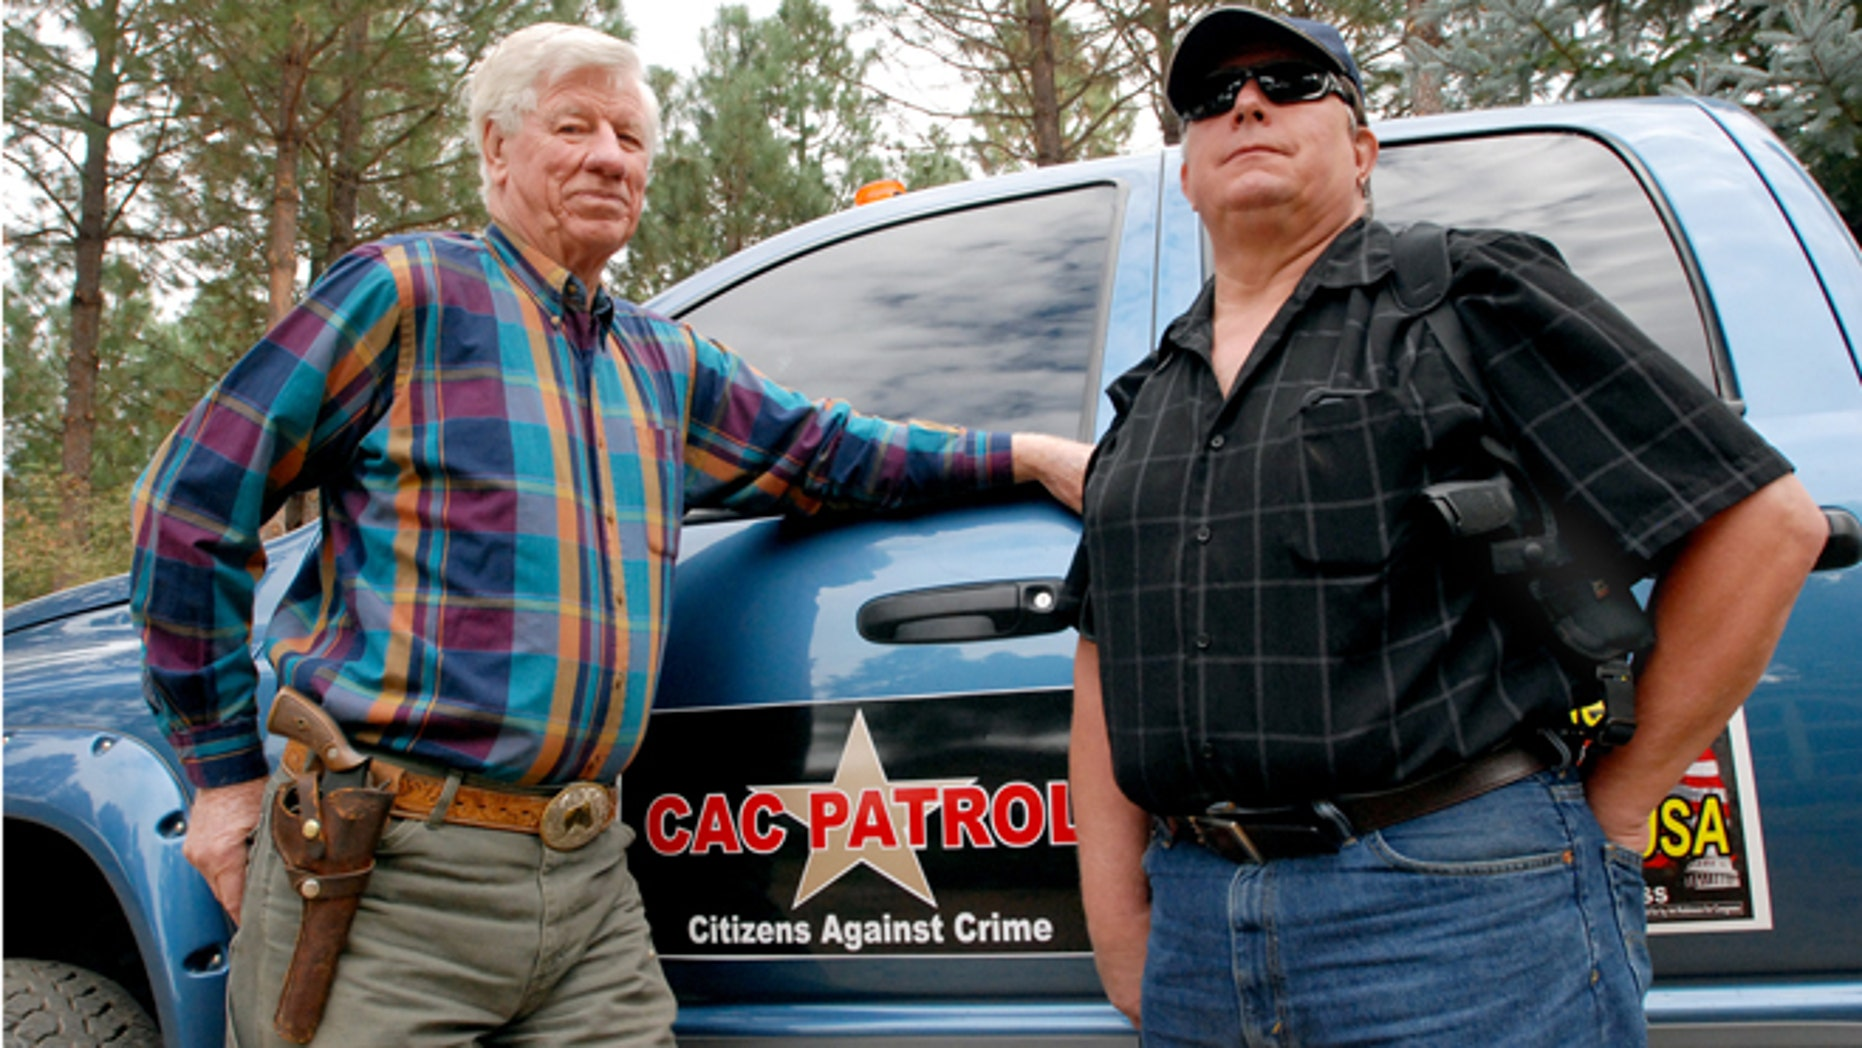 Oct. 12: Sam Nichols, left, and Glenn Woodbury pose in front of Woodbury's pickup in O'Brien, Ore. The two men are part of a neighborhood watch that does armed patrols around the rural area to deter crime since budget cutbacks have left the Josephine County Sheriff's Office with just three patrol deputies and limited jail space.